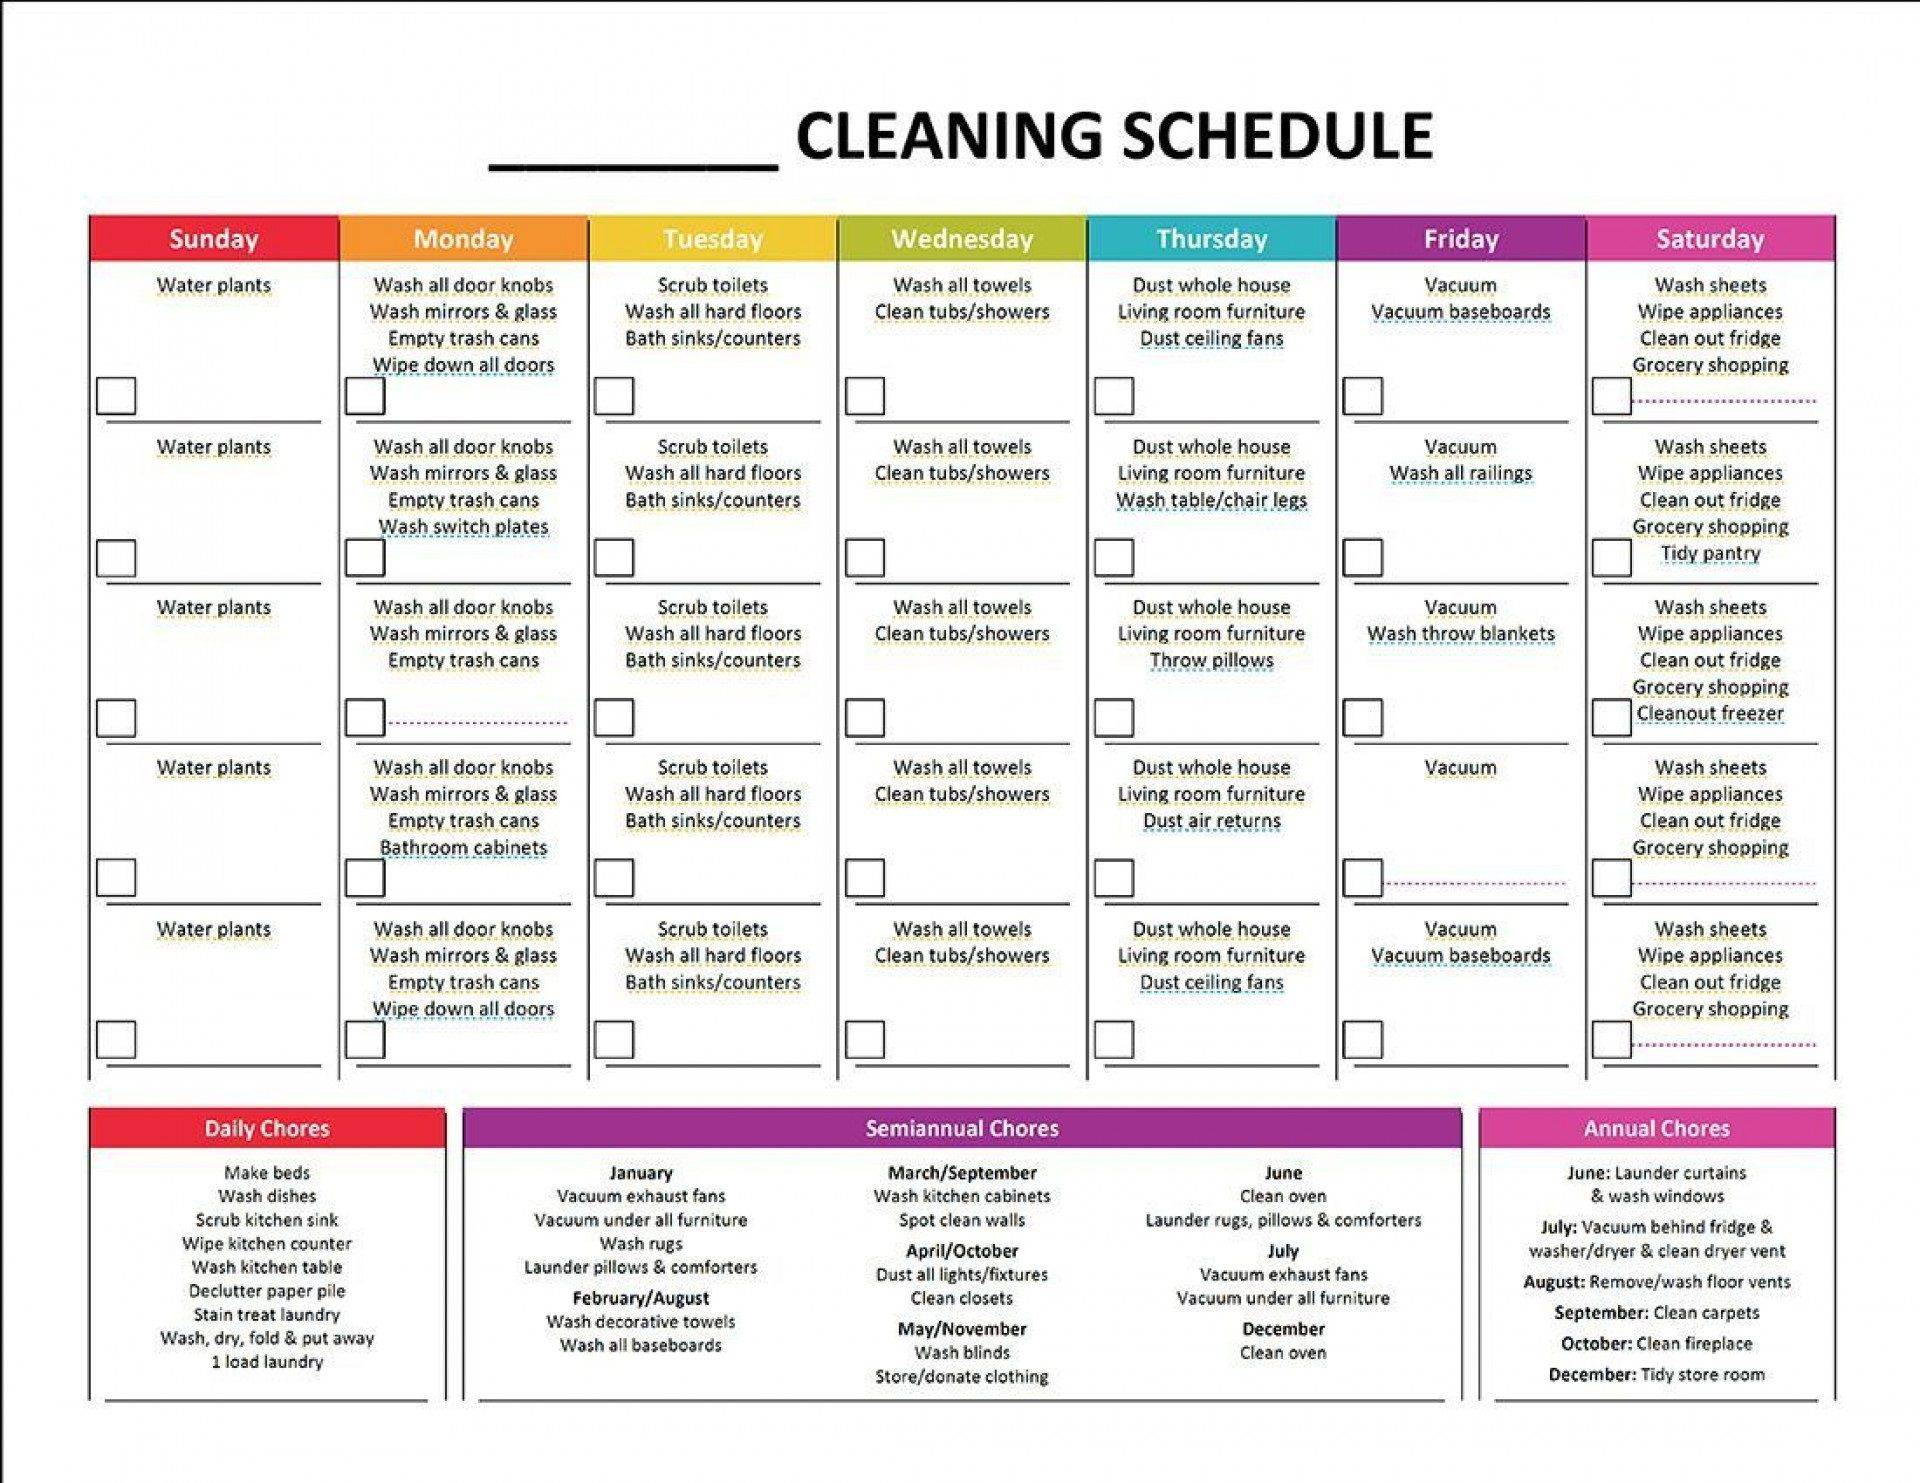 002 Stunning House Cleaning Schedule Template Excel Sample Full